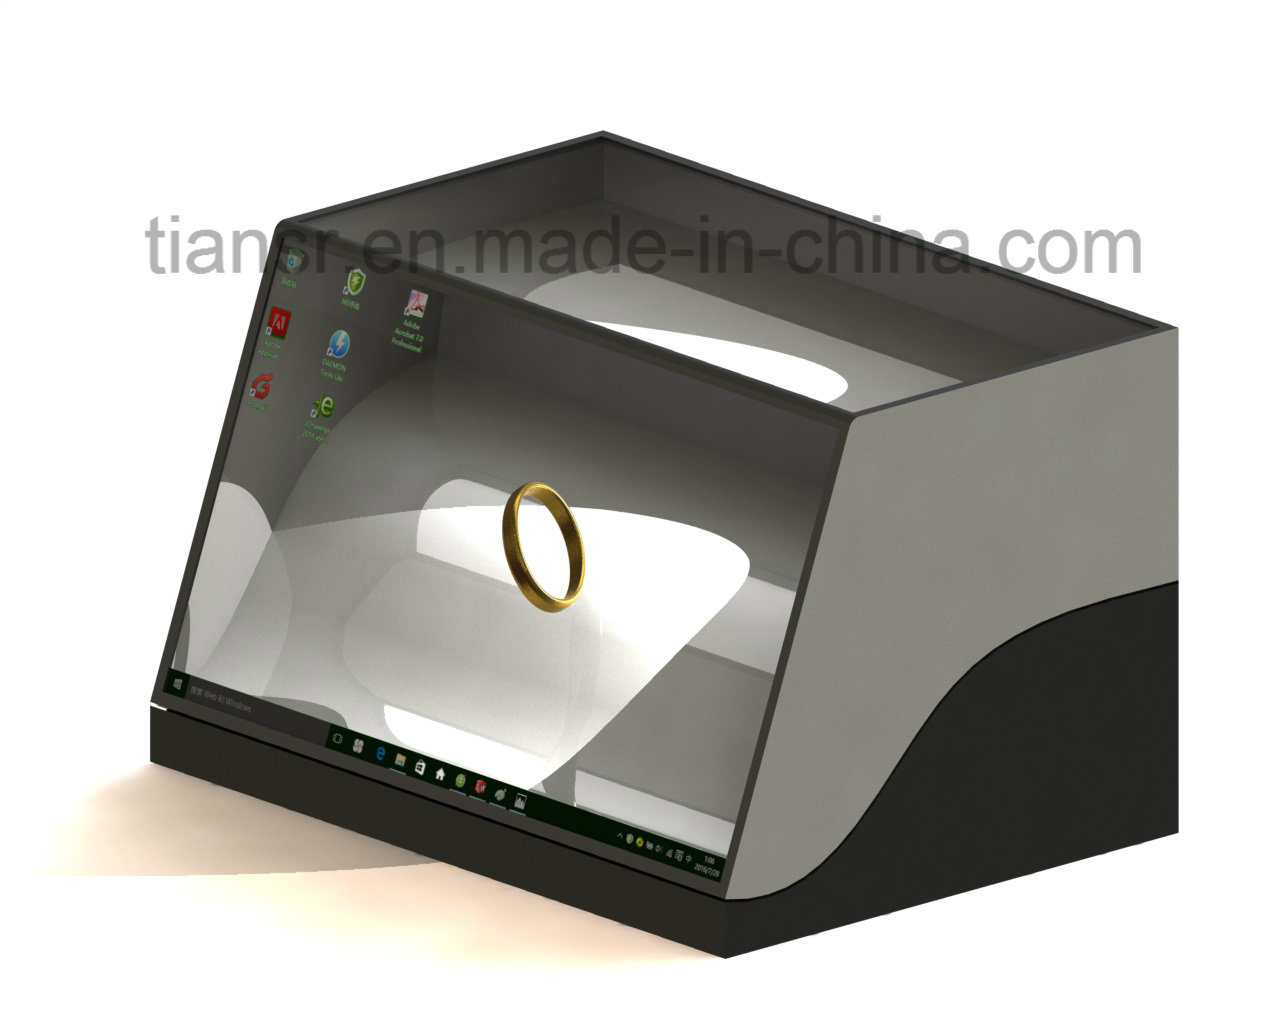 22 Inch Transparent Display Stand with The Counter Design